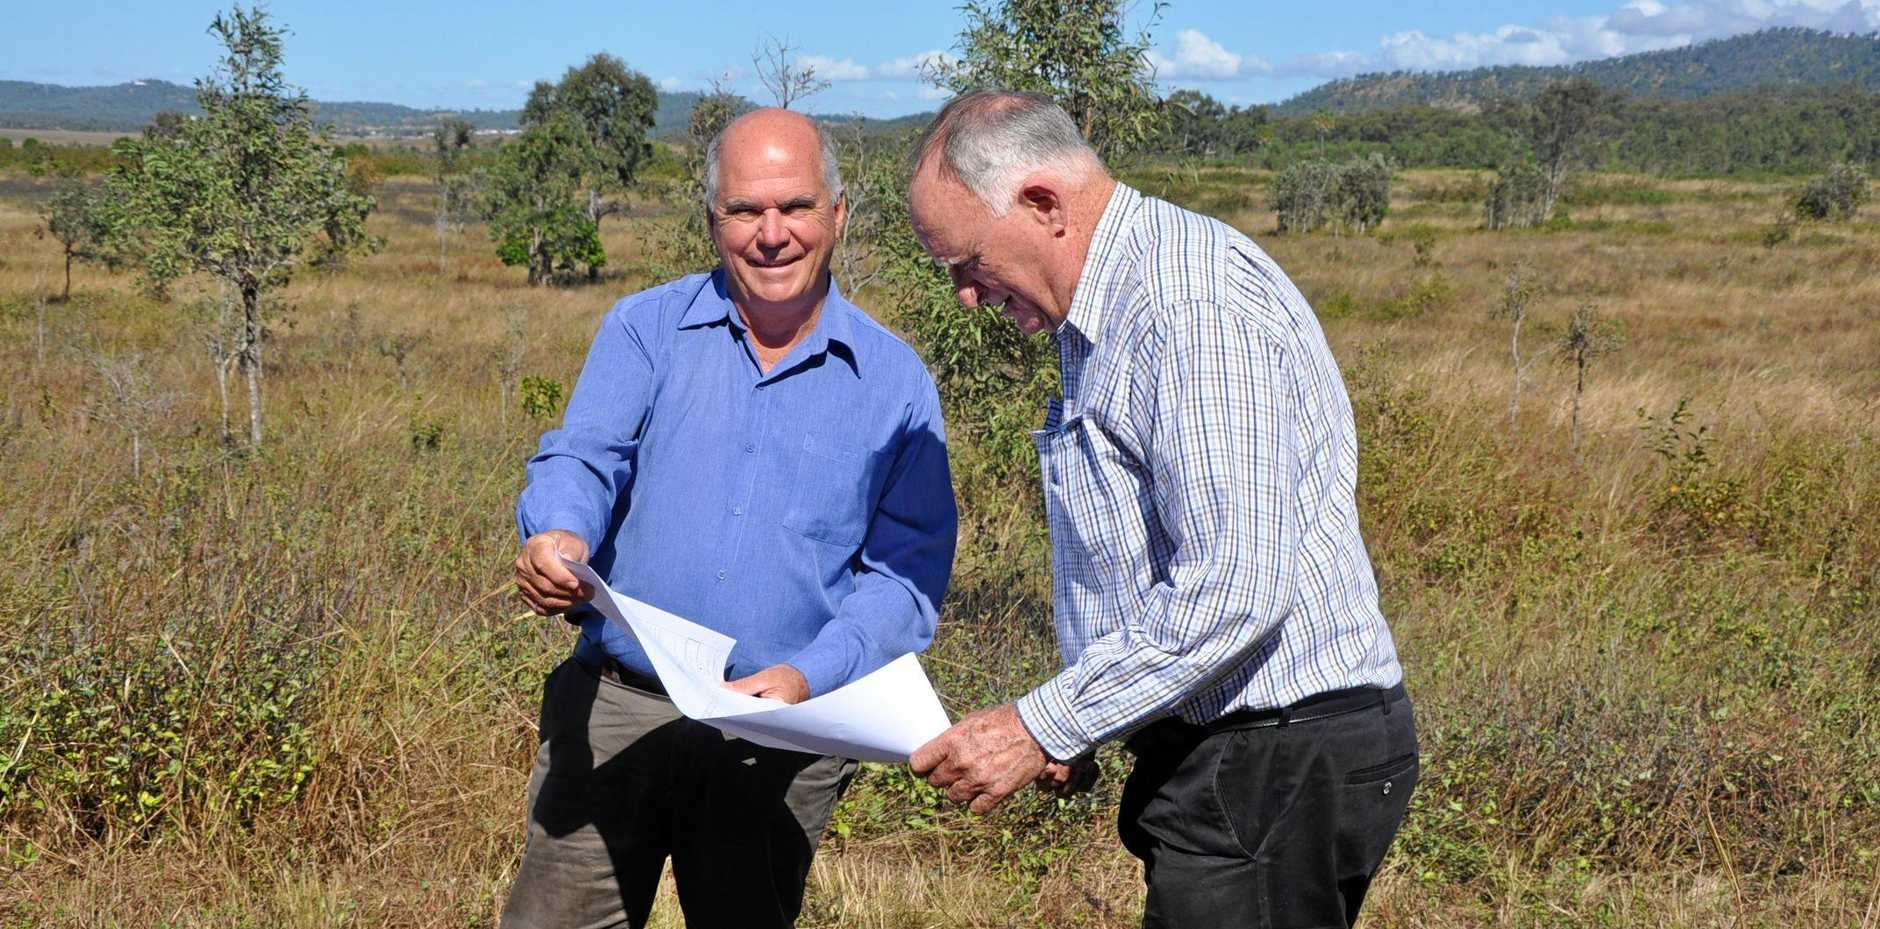 CLEAR PLAN: Mayor Bill Ludwig and Cr Tom Wyatt examine plans for the new memorial gardens at the Taroomball site.